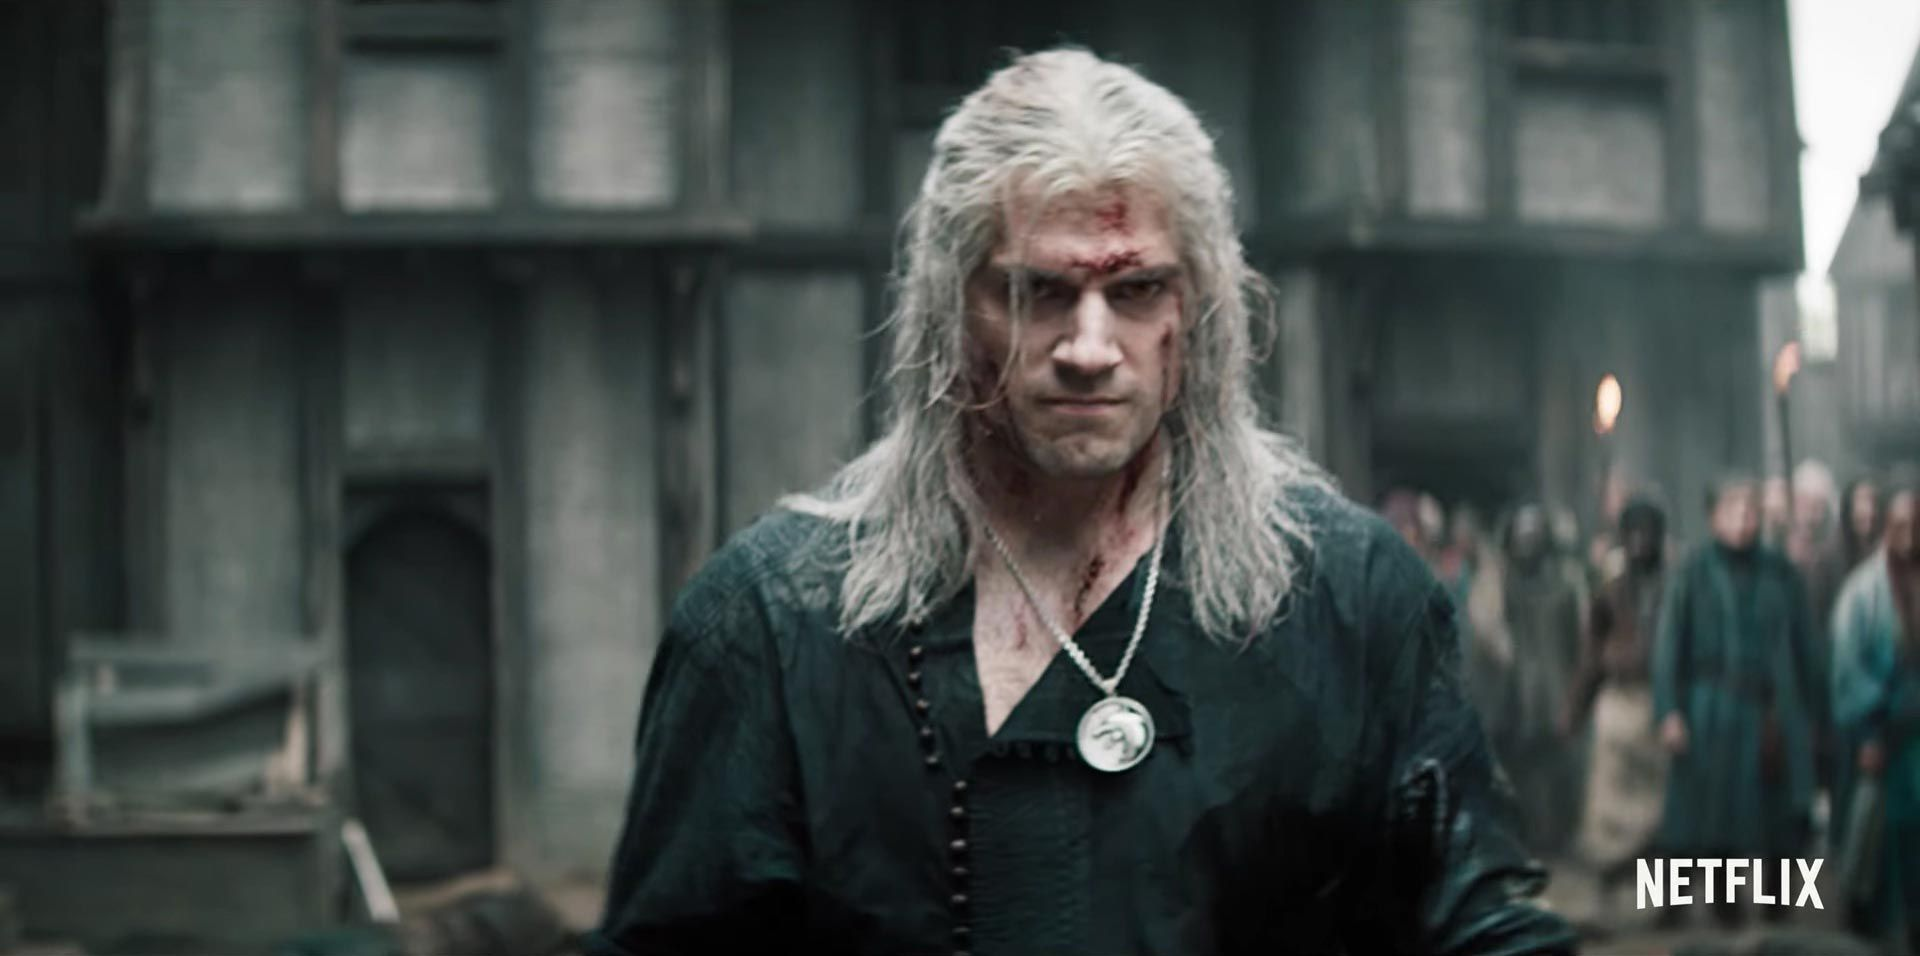 The Witcher boss explains the extra lengths Henry Cavill went to for Geralt role